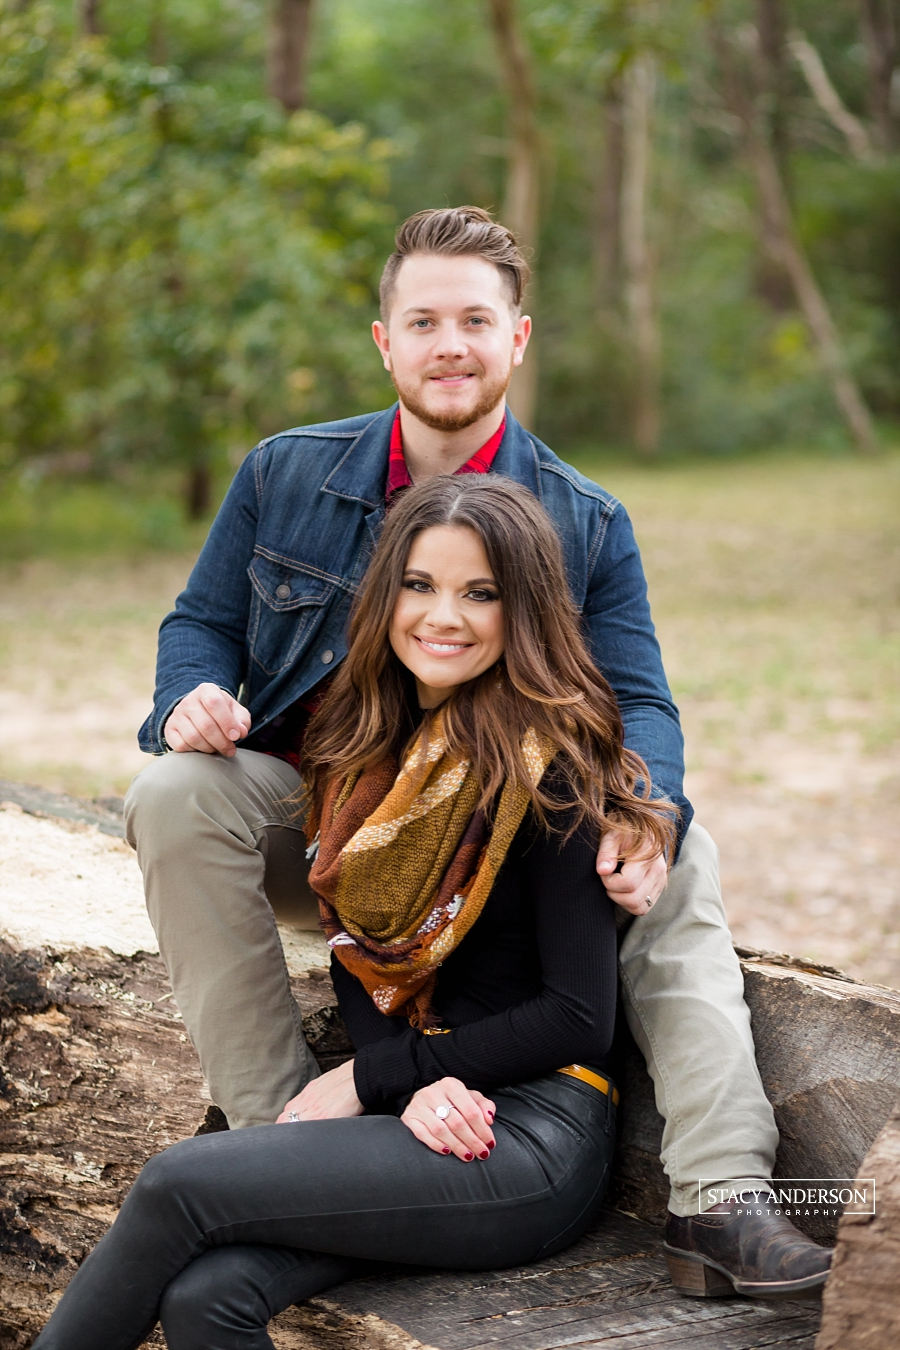 stacy-anderson-photography-houston-anniversary-photographer_0641